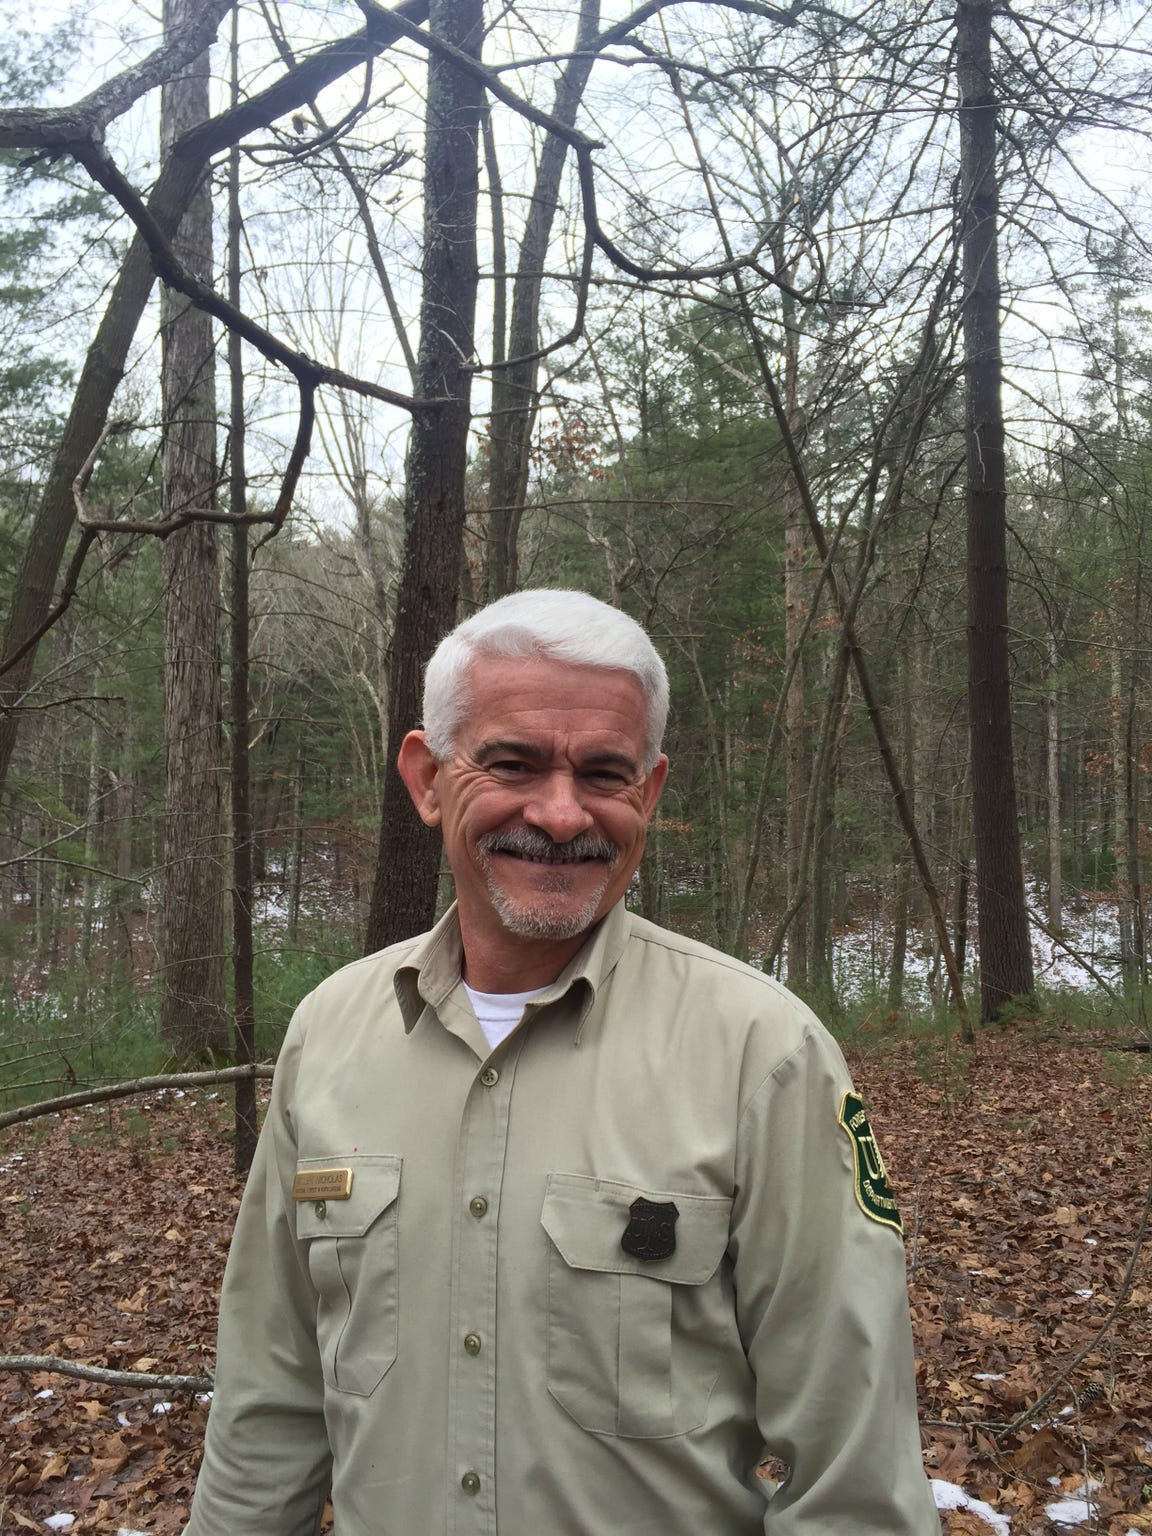 Allen Nicholas is the Supervisor for the National Forests